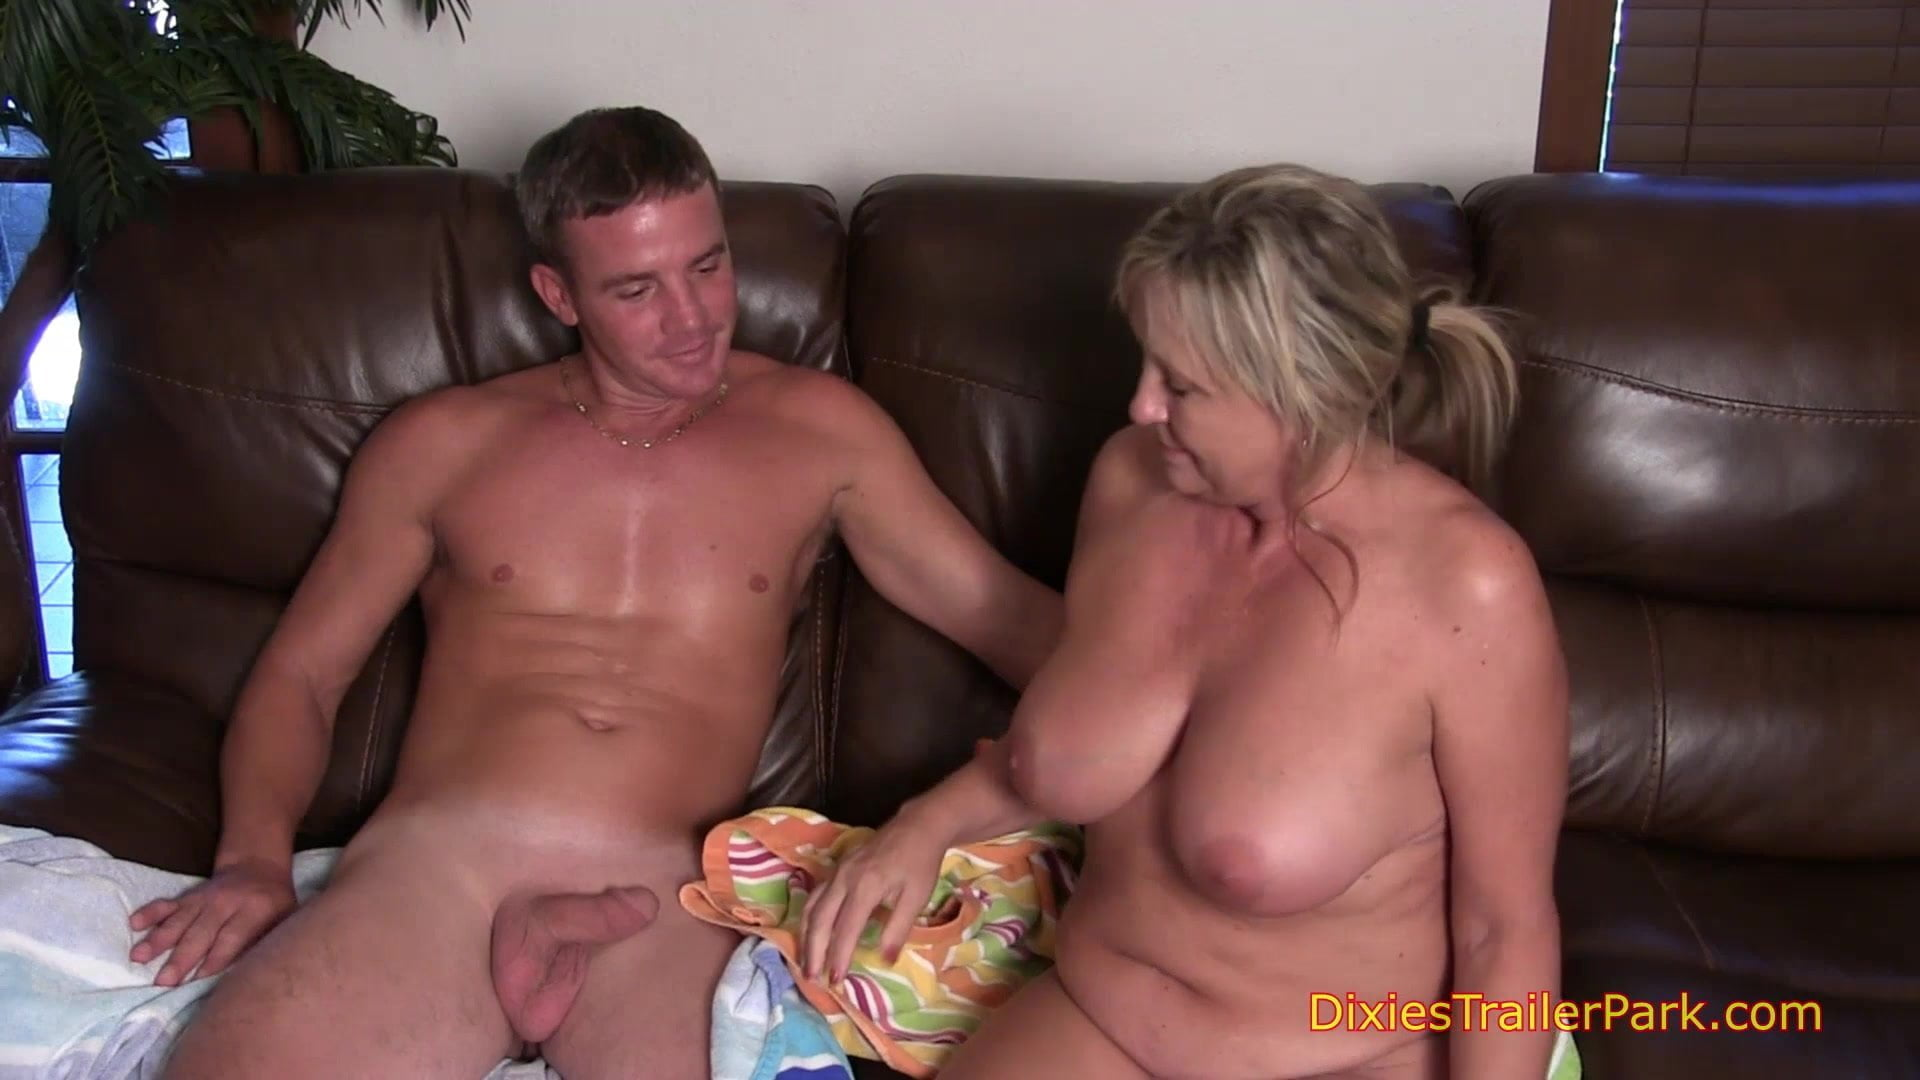 Trailer park hotties porn videos — pic 8